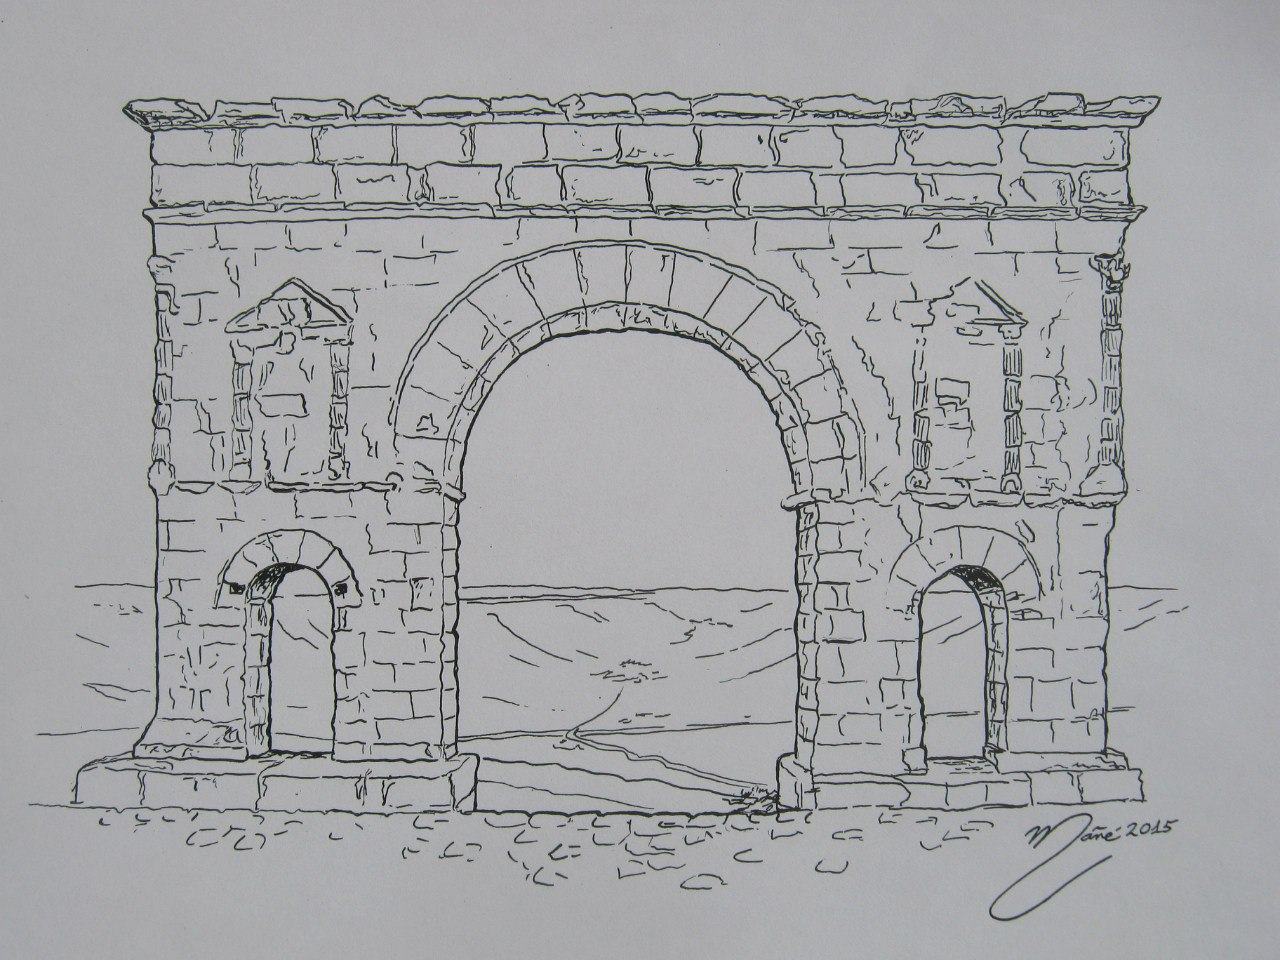 Architecture of the world the roman arch of medinaceli ink pencil drawing